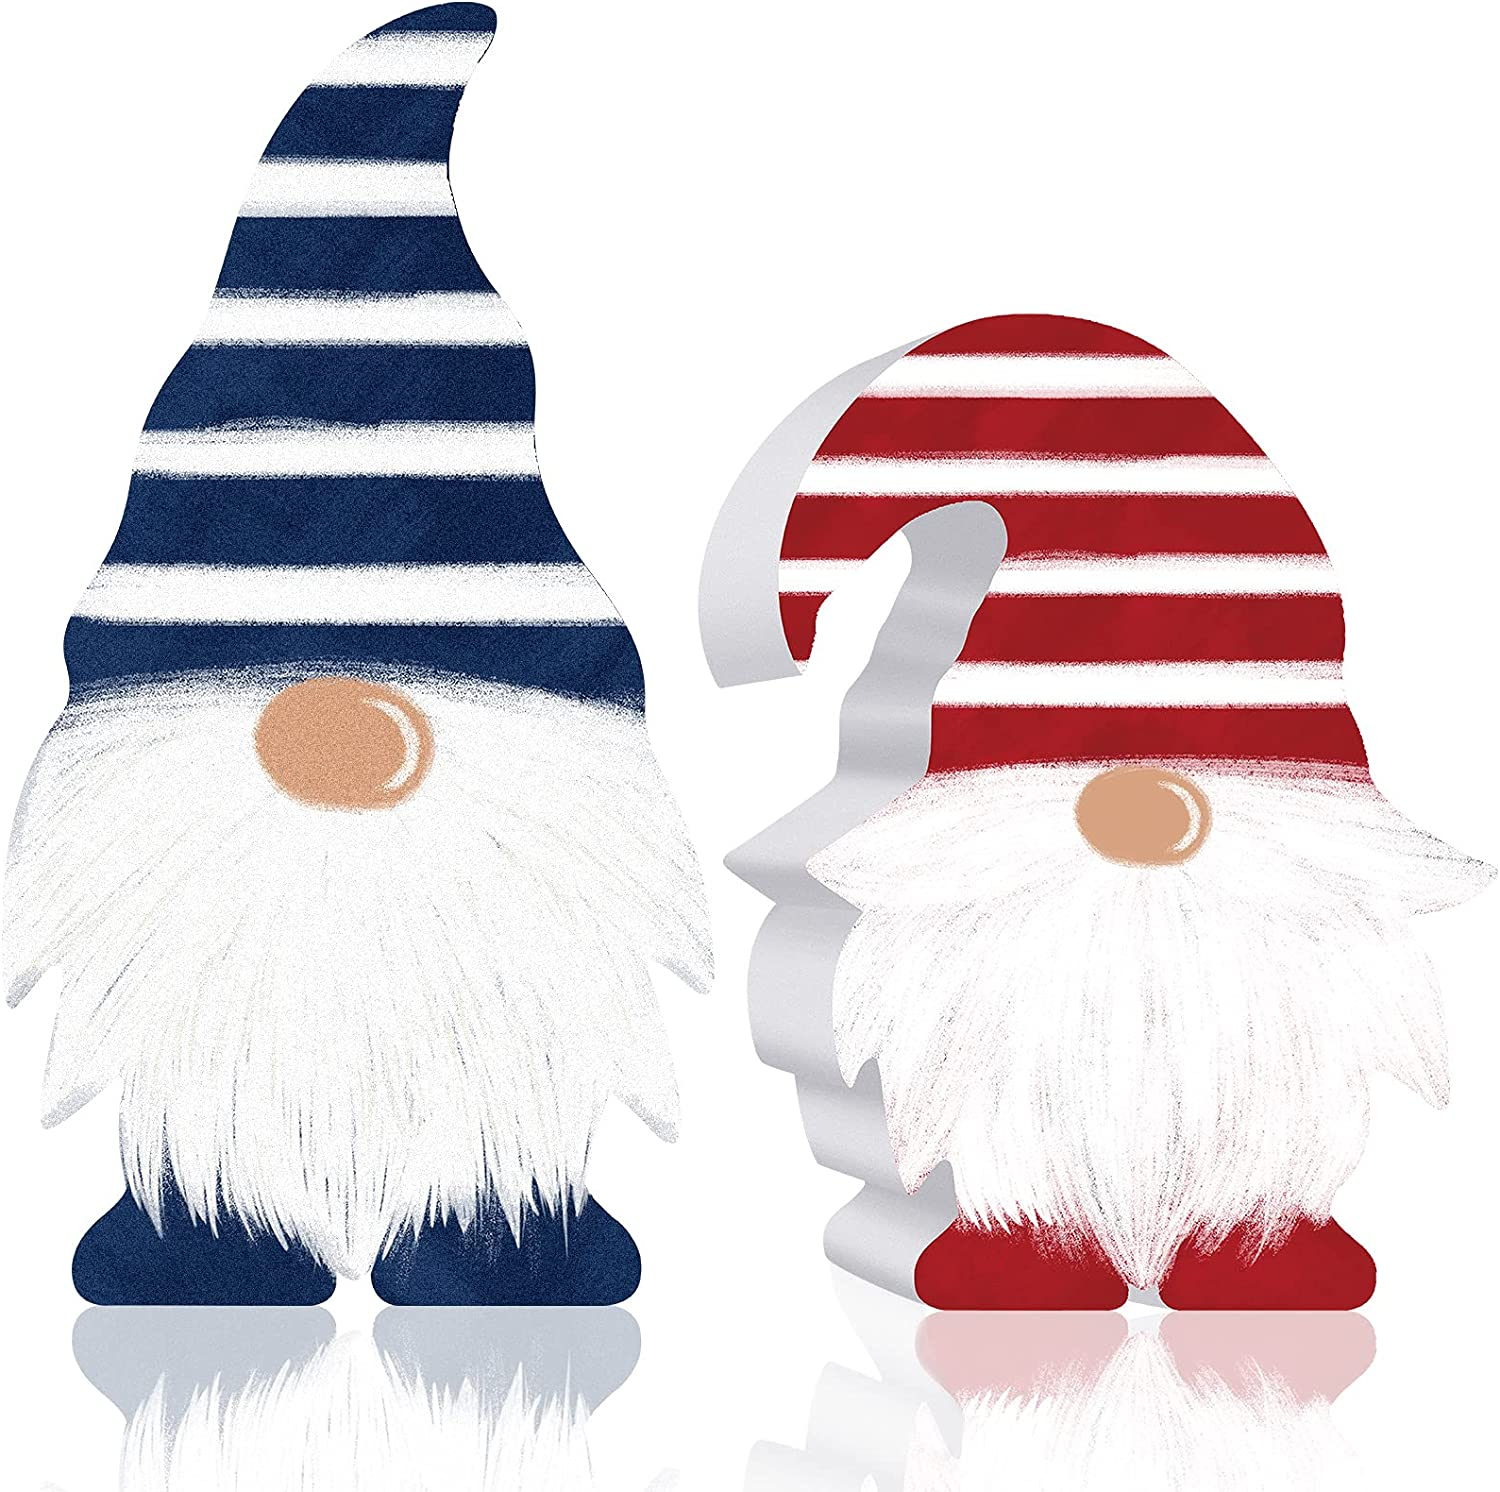 2 Pieces Patriotic Gnome Scandinavian Wooden Sign Elf Gnome Decor Farmhouse Kitchen Decor Memorial Day Birthday Present Tiered Tray Decorations Table Decors for Desk Office Home American Decorations